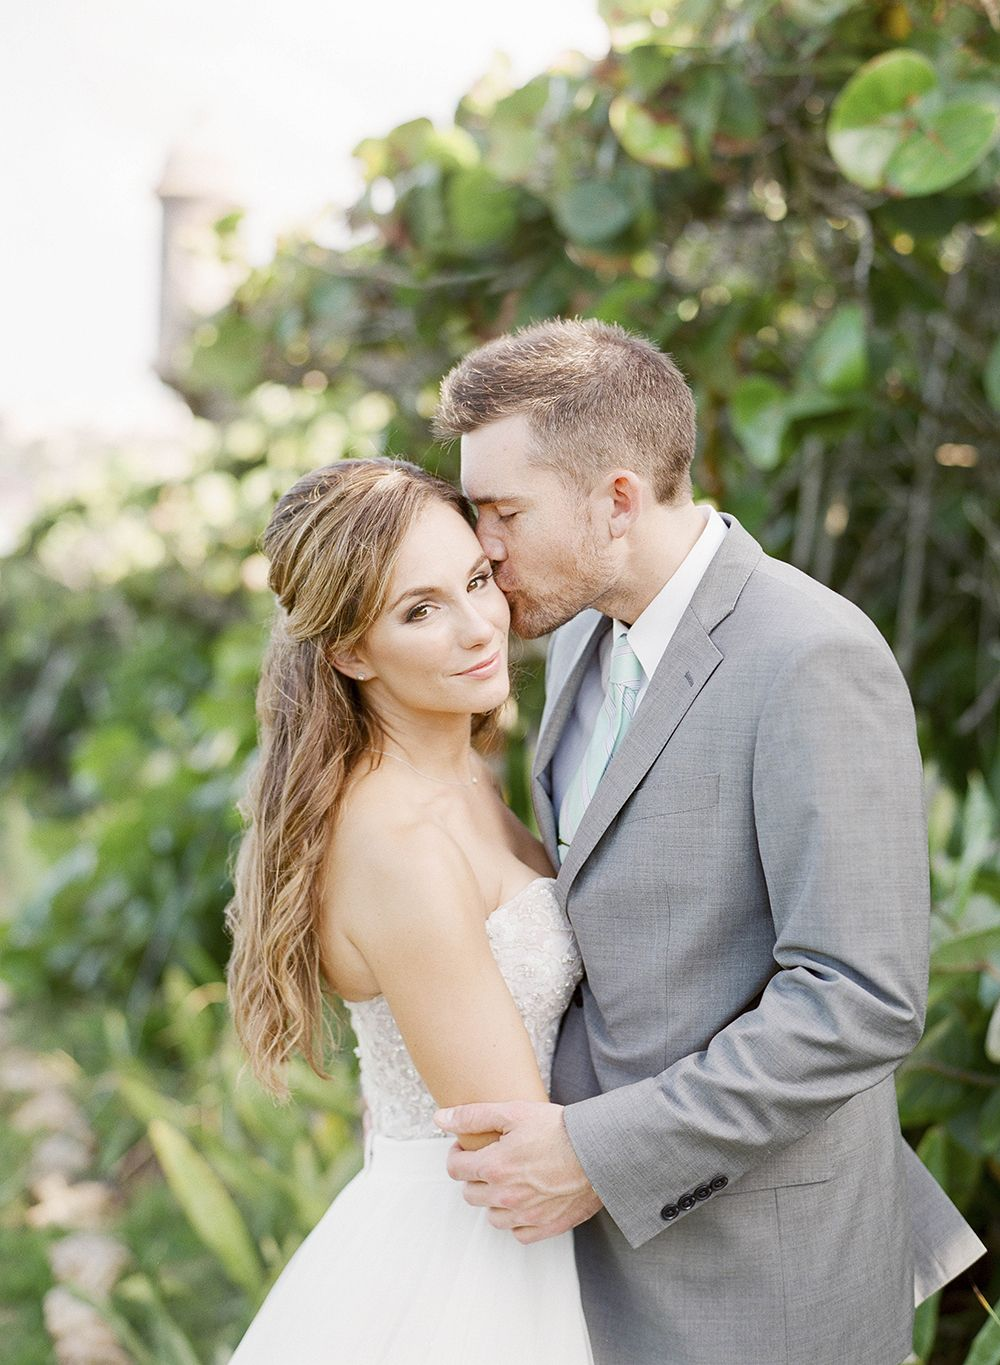 Puerto Rico Destination Wedding - photo by Lisa Blume Photography http://ruffledblog.com/destination-wedding-in-a-puerto-rican-rainforest